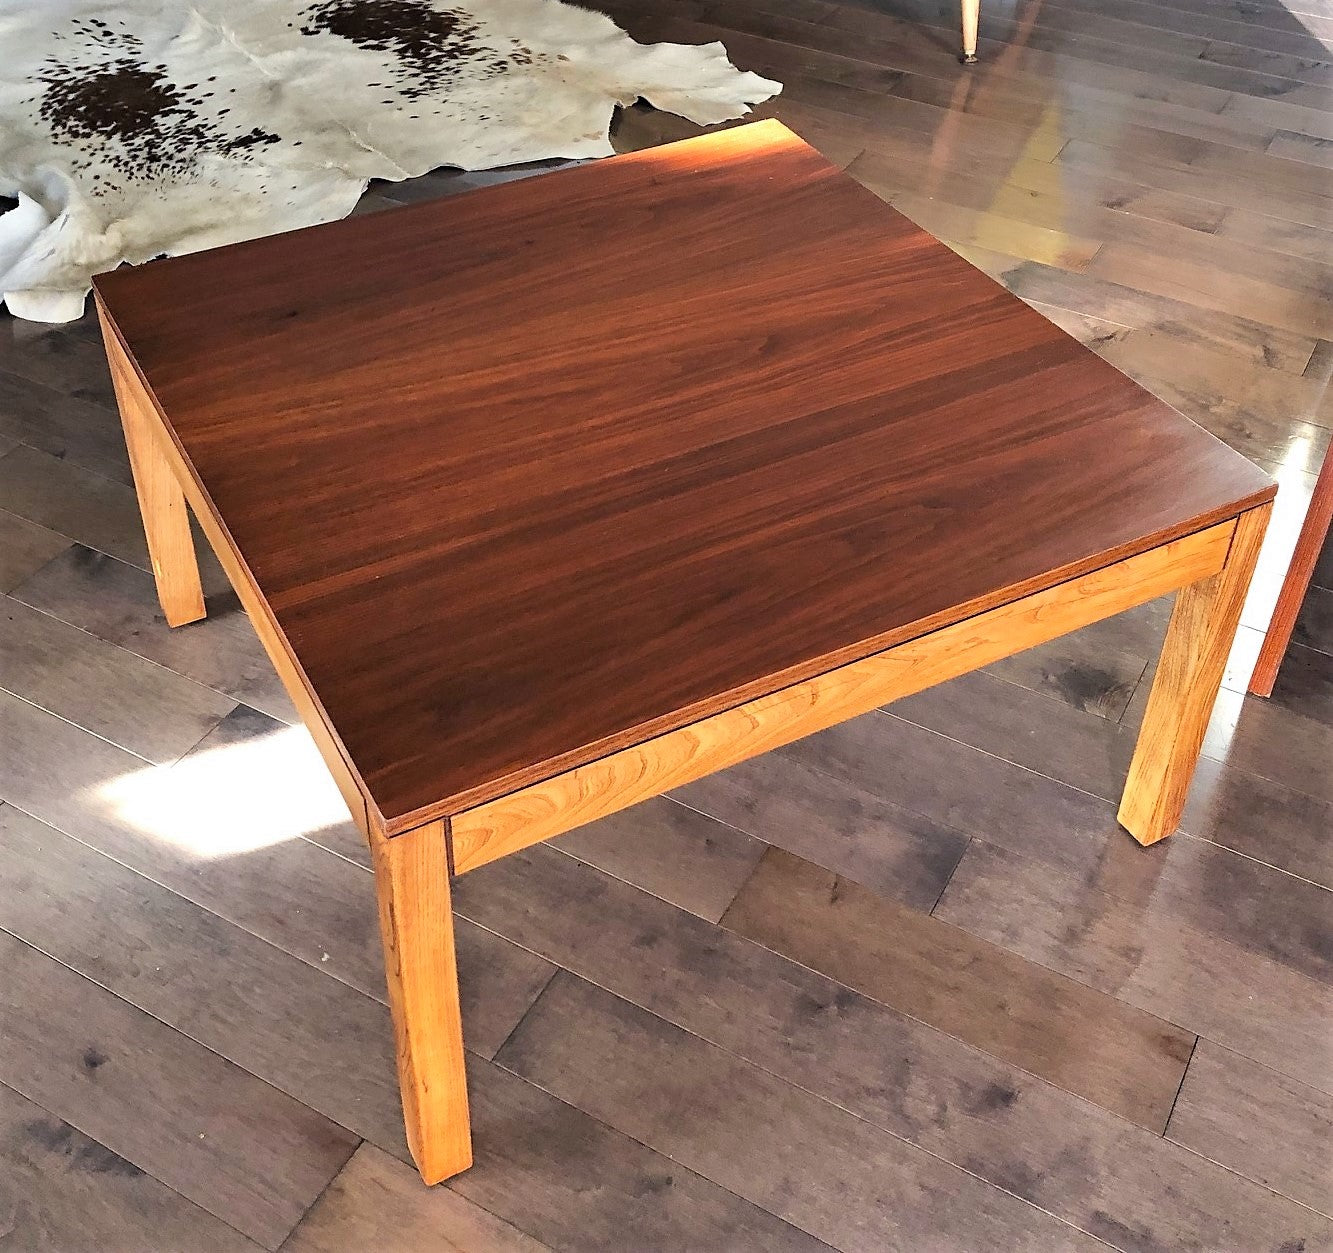 Sqaure Mid Century Modern Accent Chairs.Refinished Mcm Walnut Ash Accent Or Coffee Table Large Square 30 Perfect